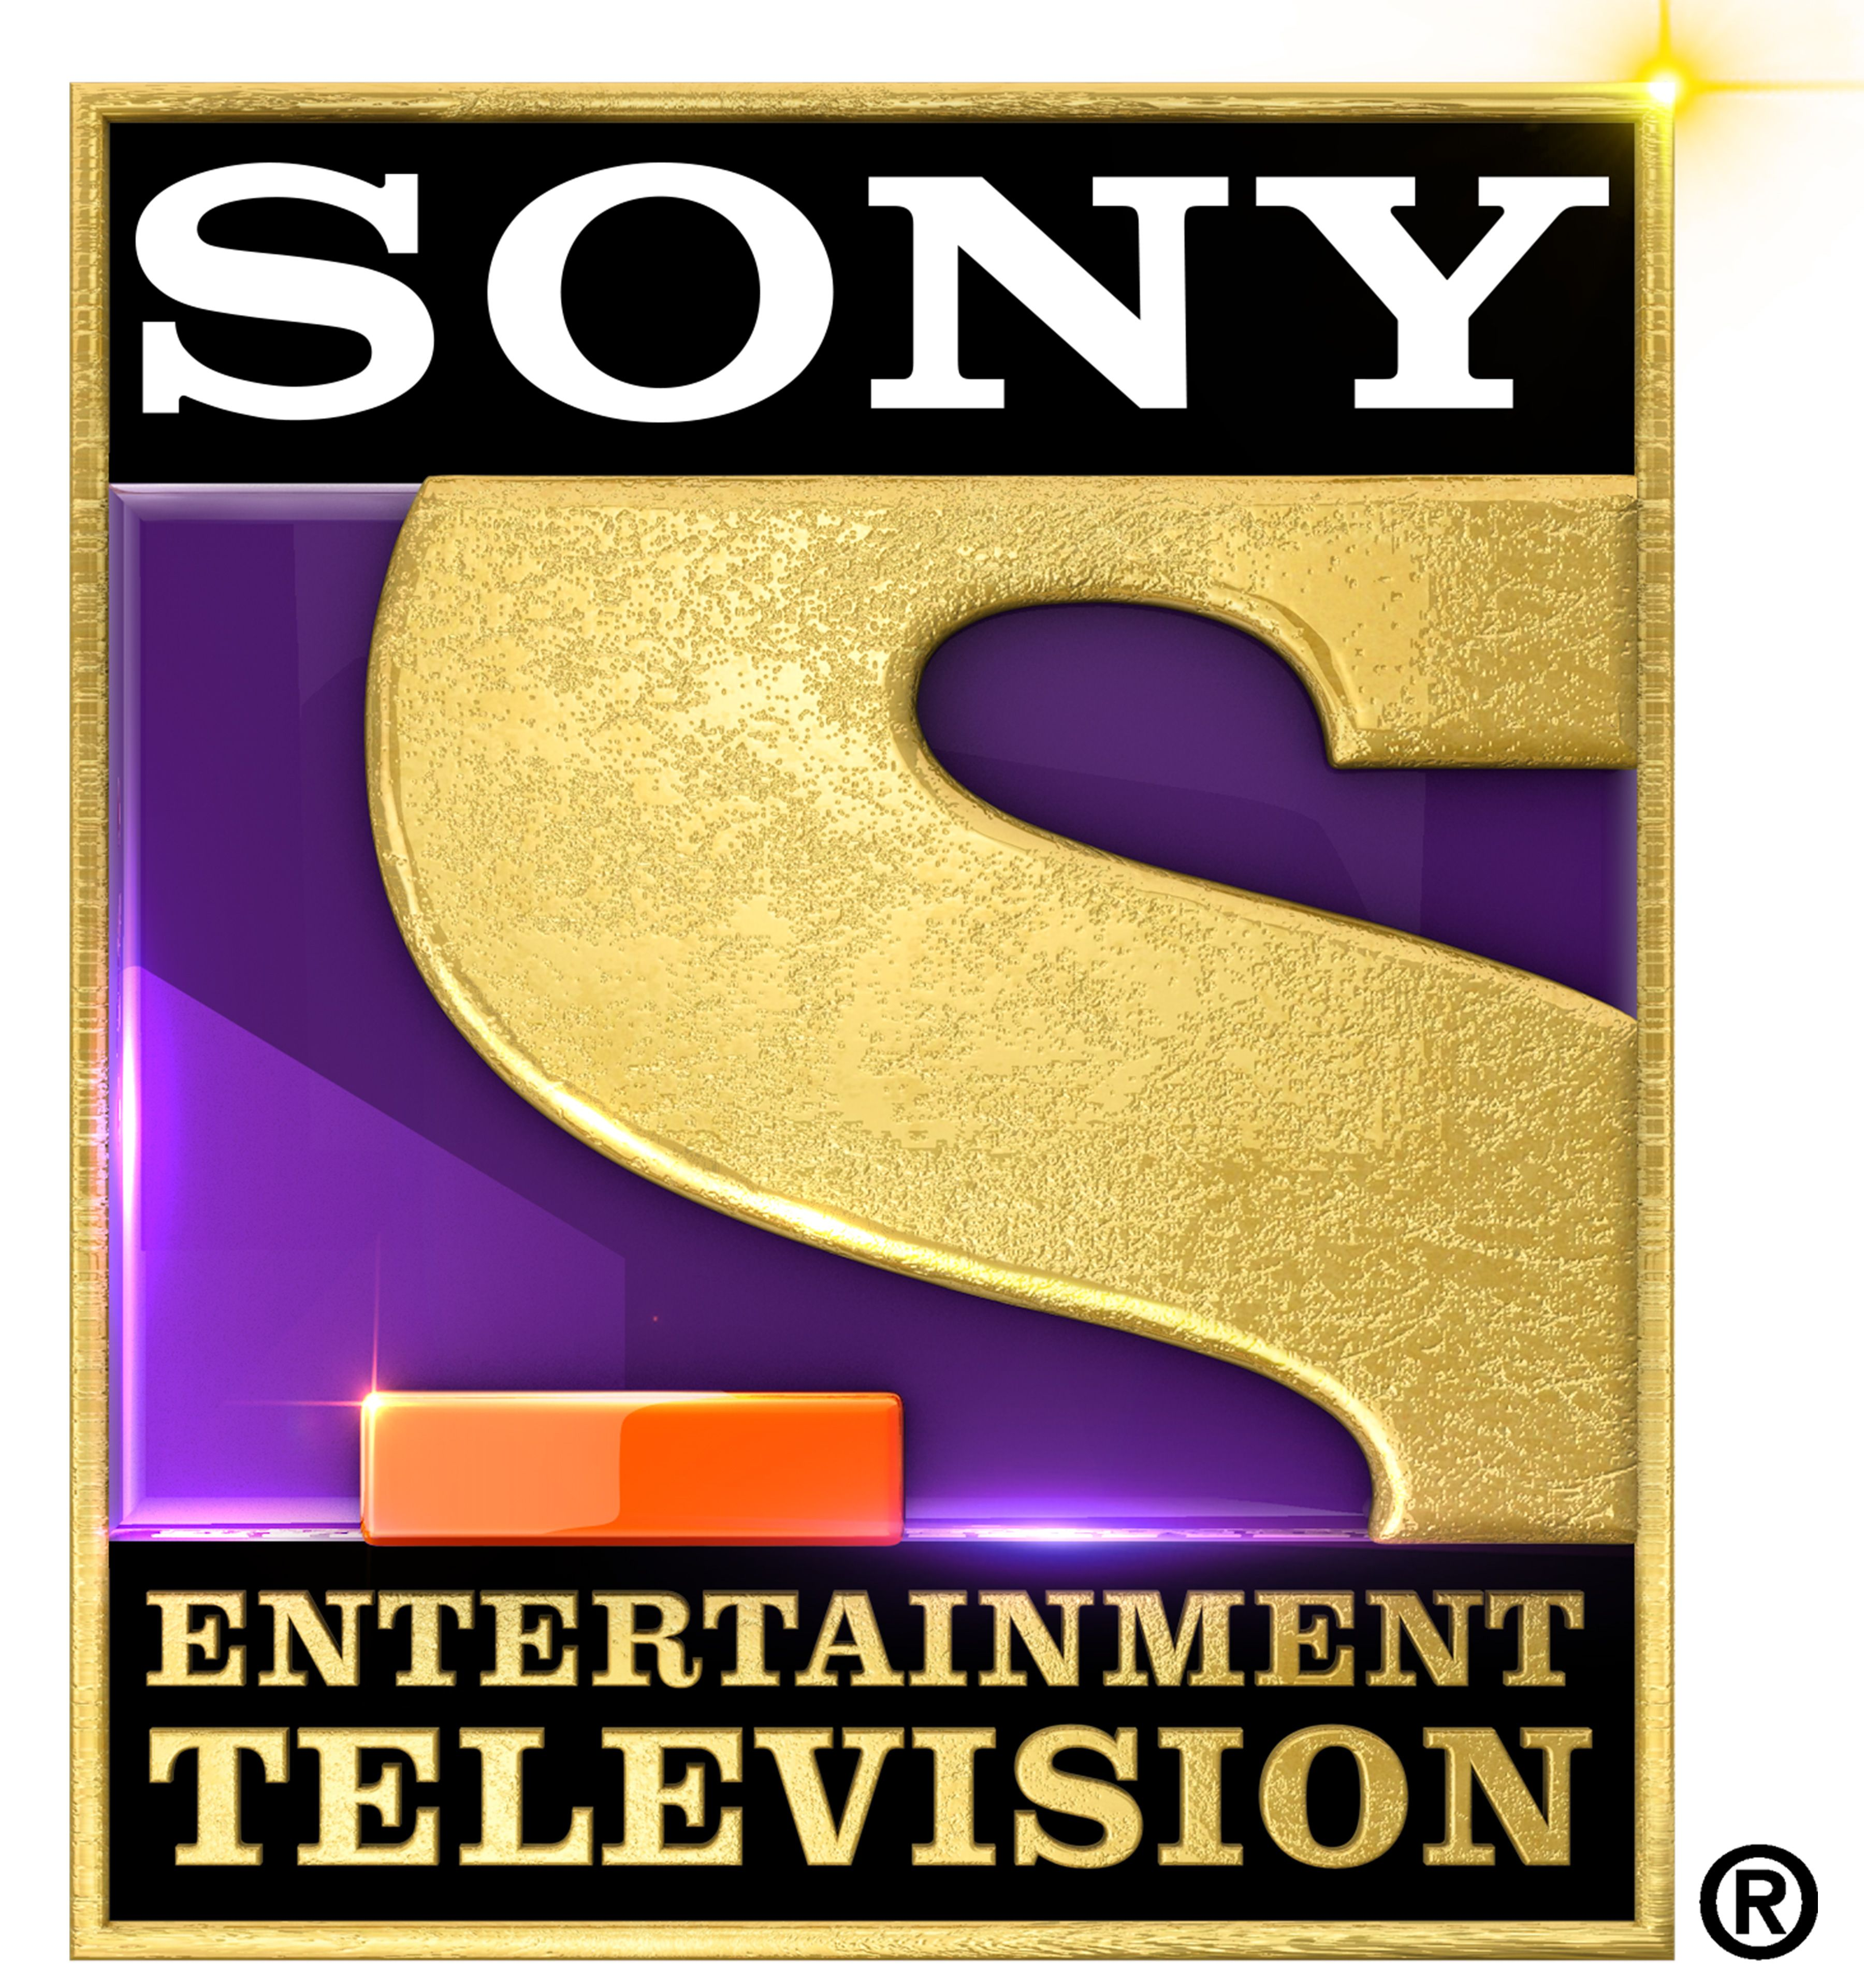 sony entertainment television new logo view and download